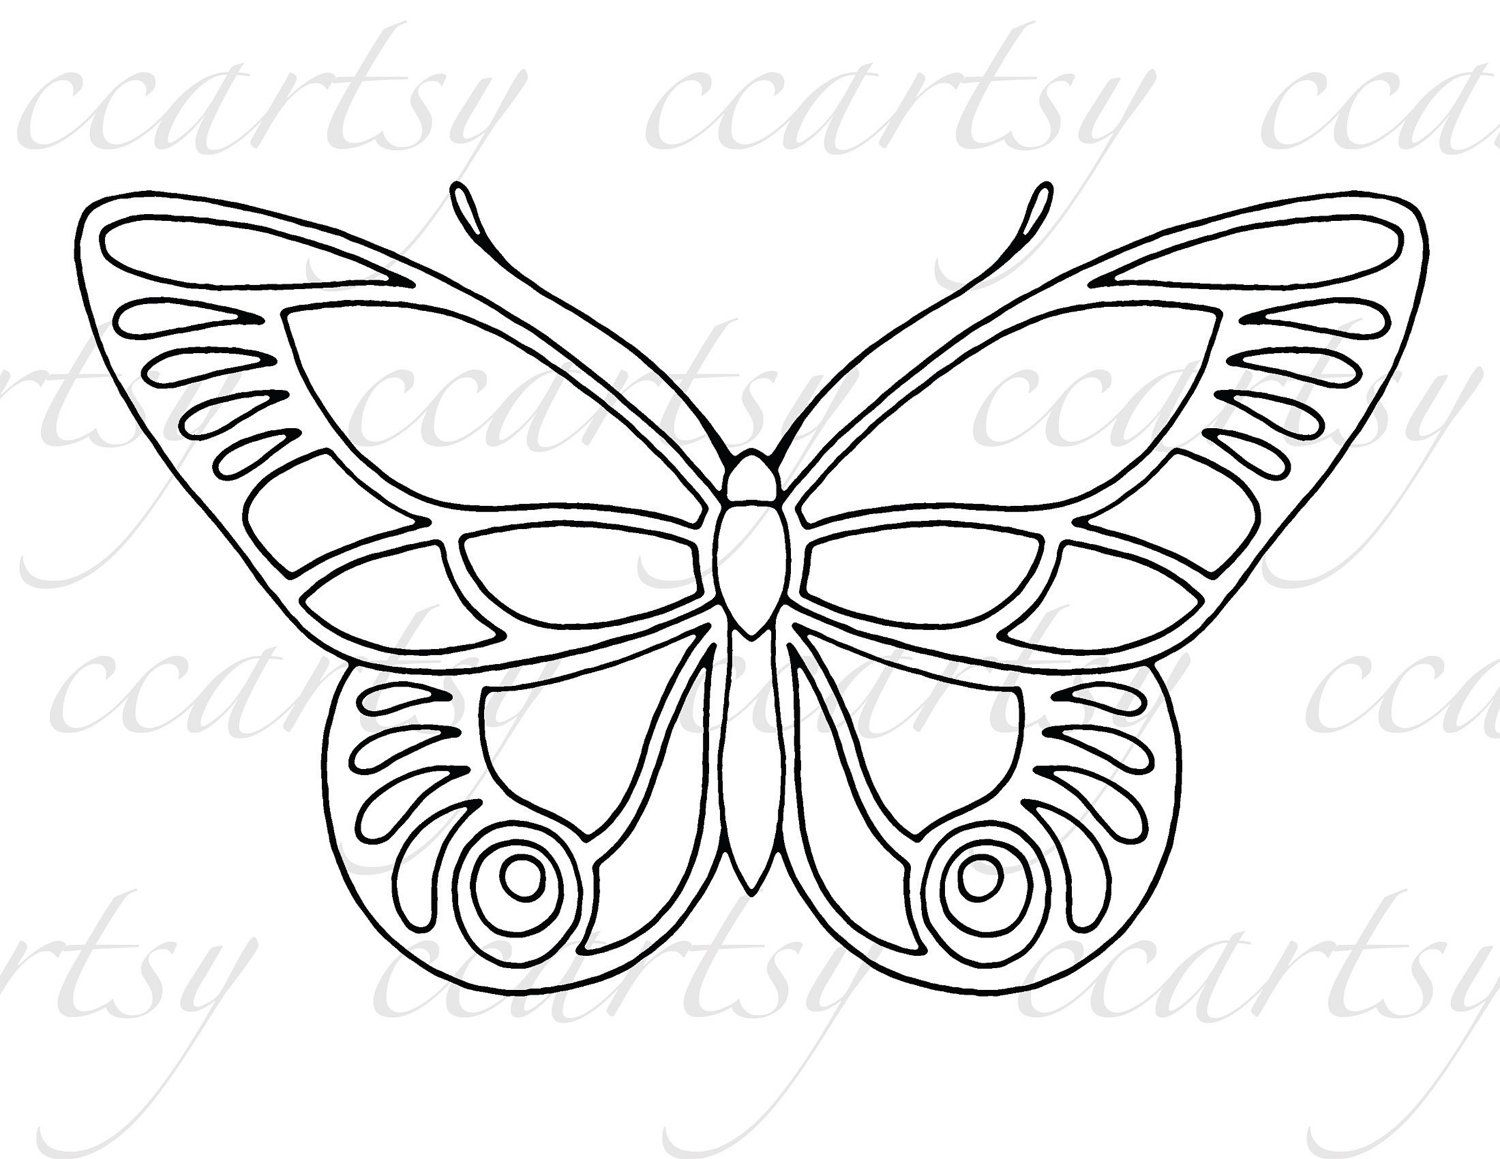 Printable coloring pages etsy - Beautiful Butterfly Printable Coloring Page C By Ccartsy On Etsy 1 50